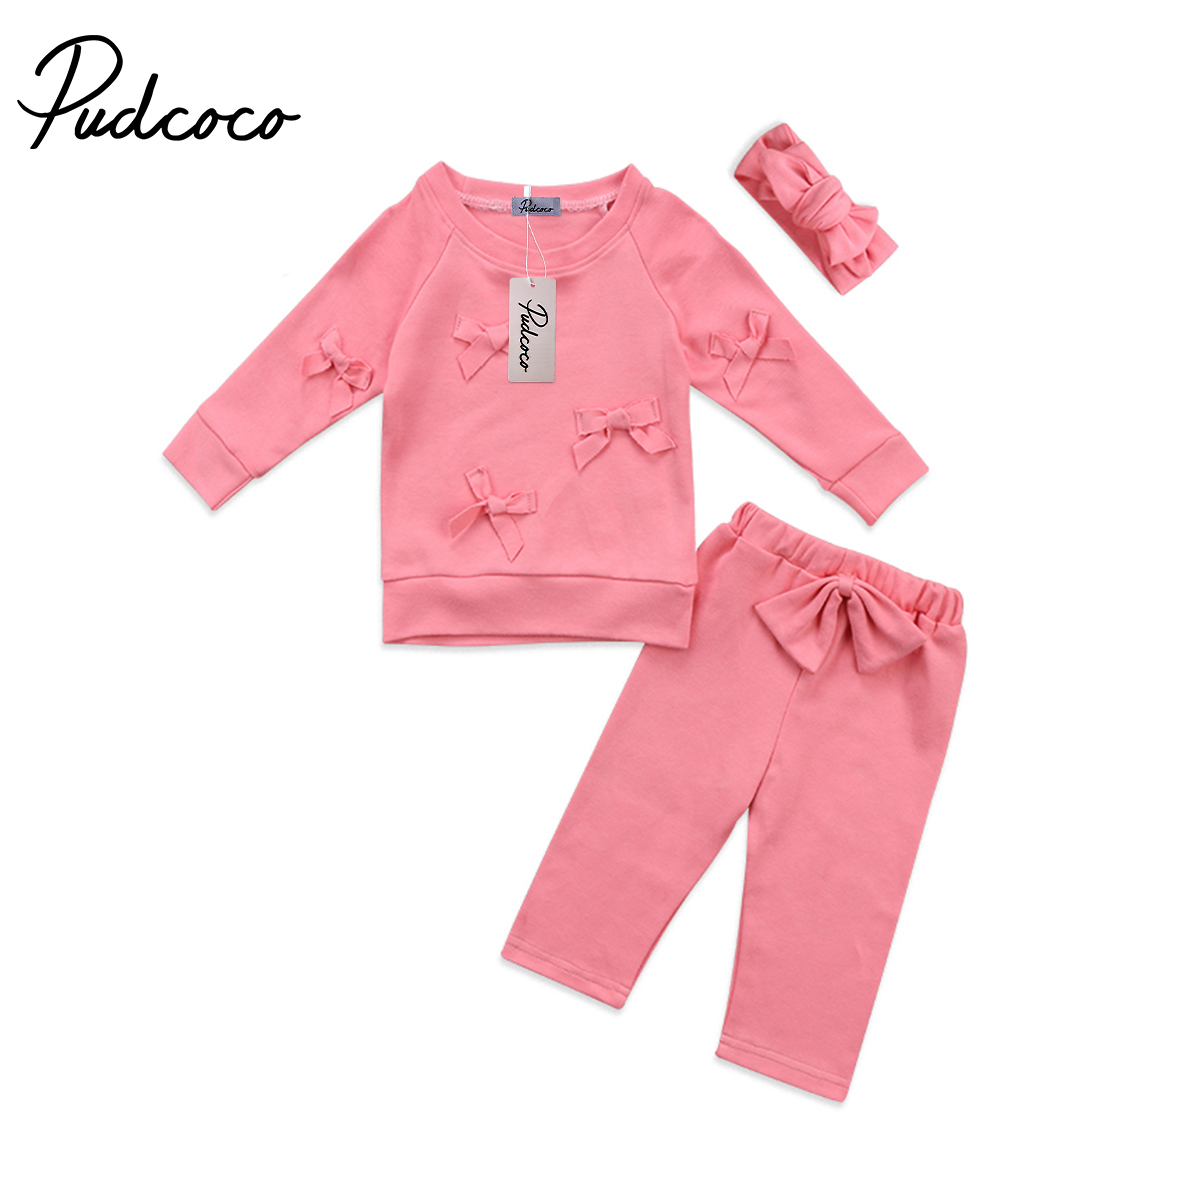 2018 Brand New Toddler Infant Child Kids Baby Girls Flower Top Blouse Pants Leggings Headband 3Pcs Bow Outfits Set Clothes 2-7T